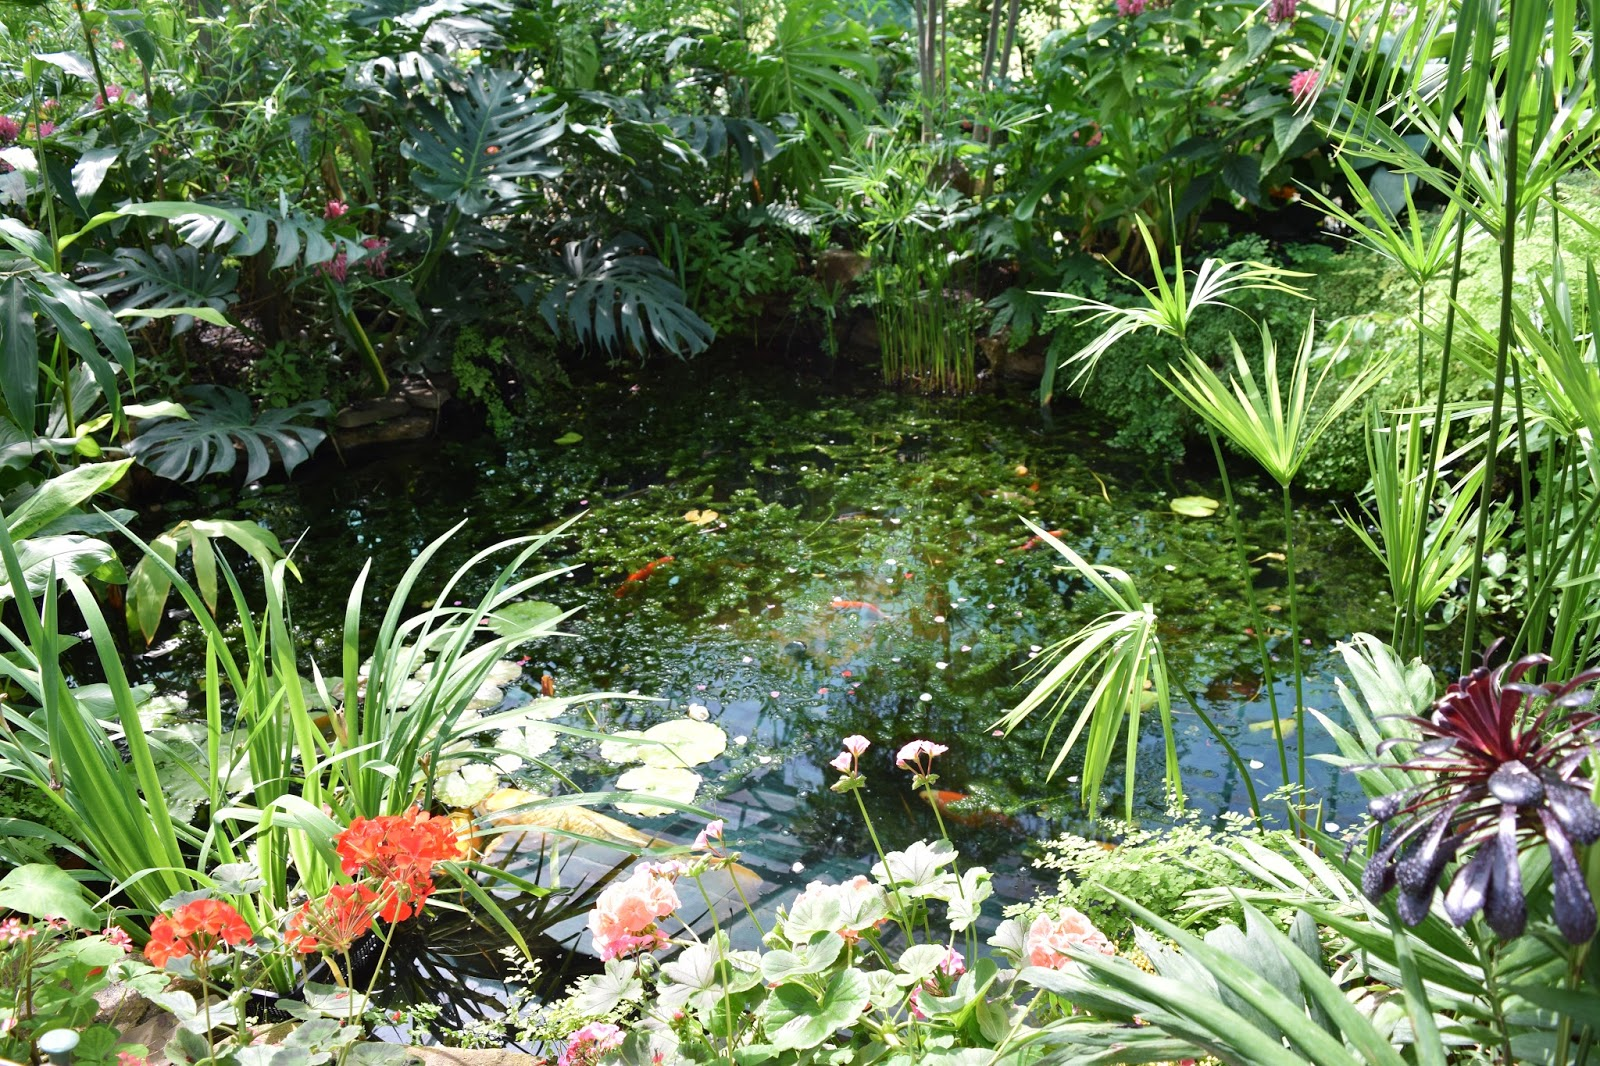 the fish pond inside the butterfly farm. The pond is surrounded by greenery.